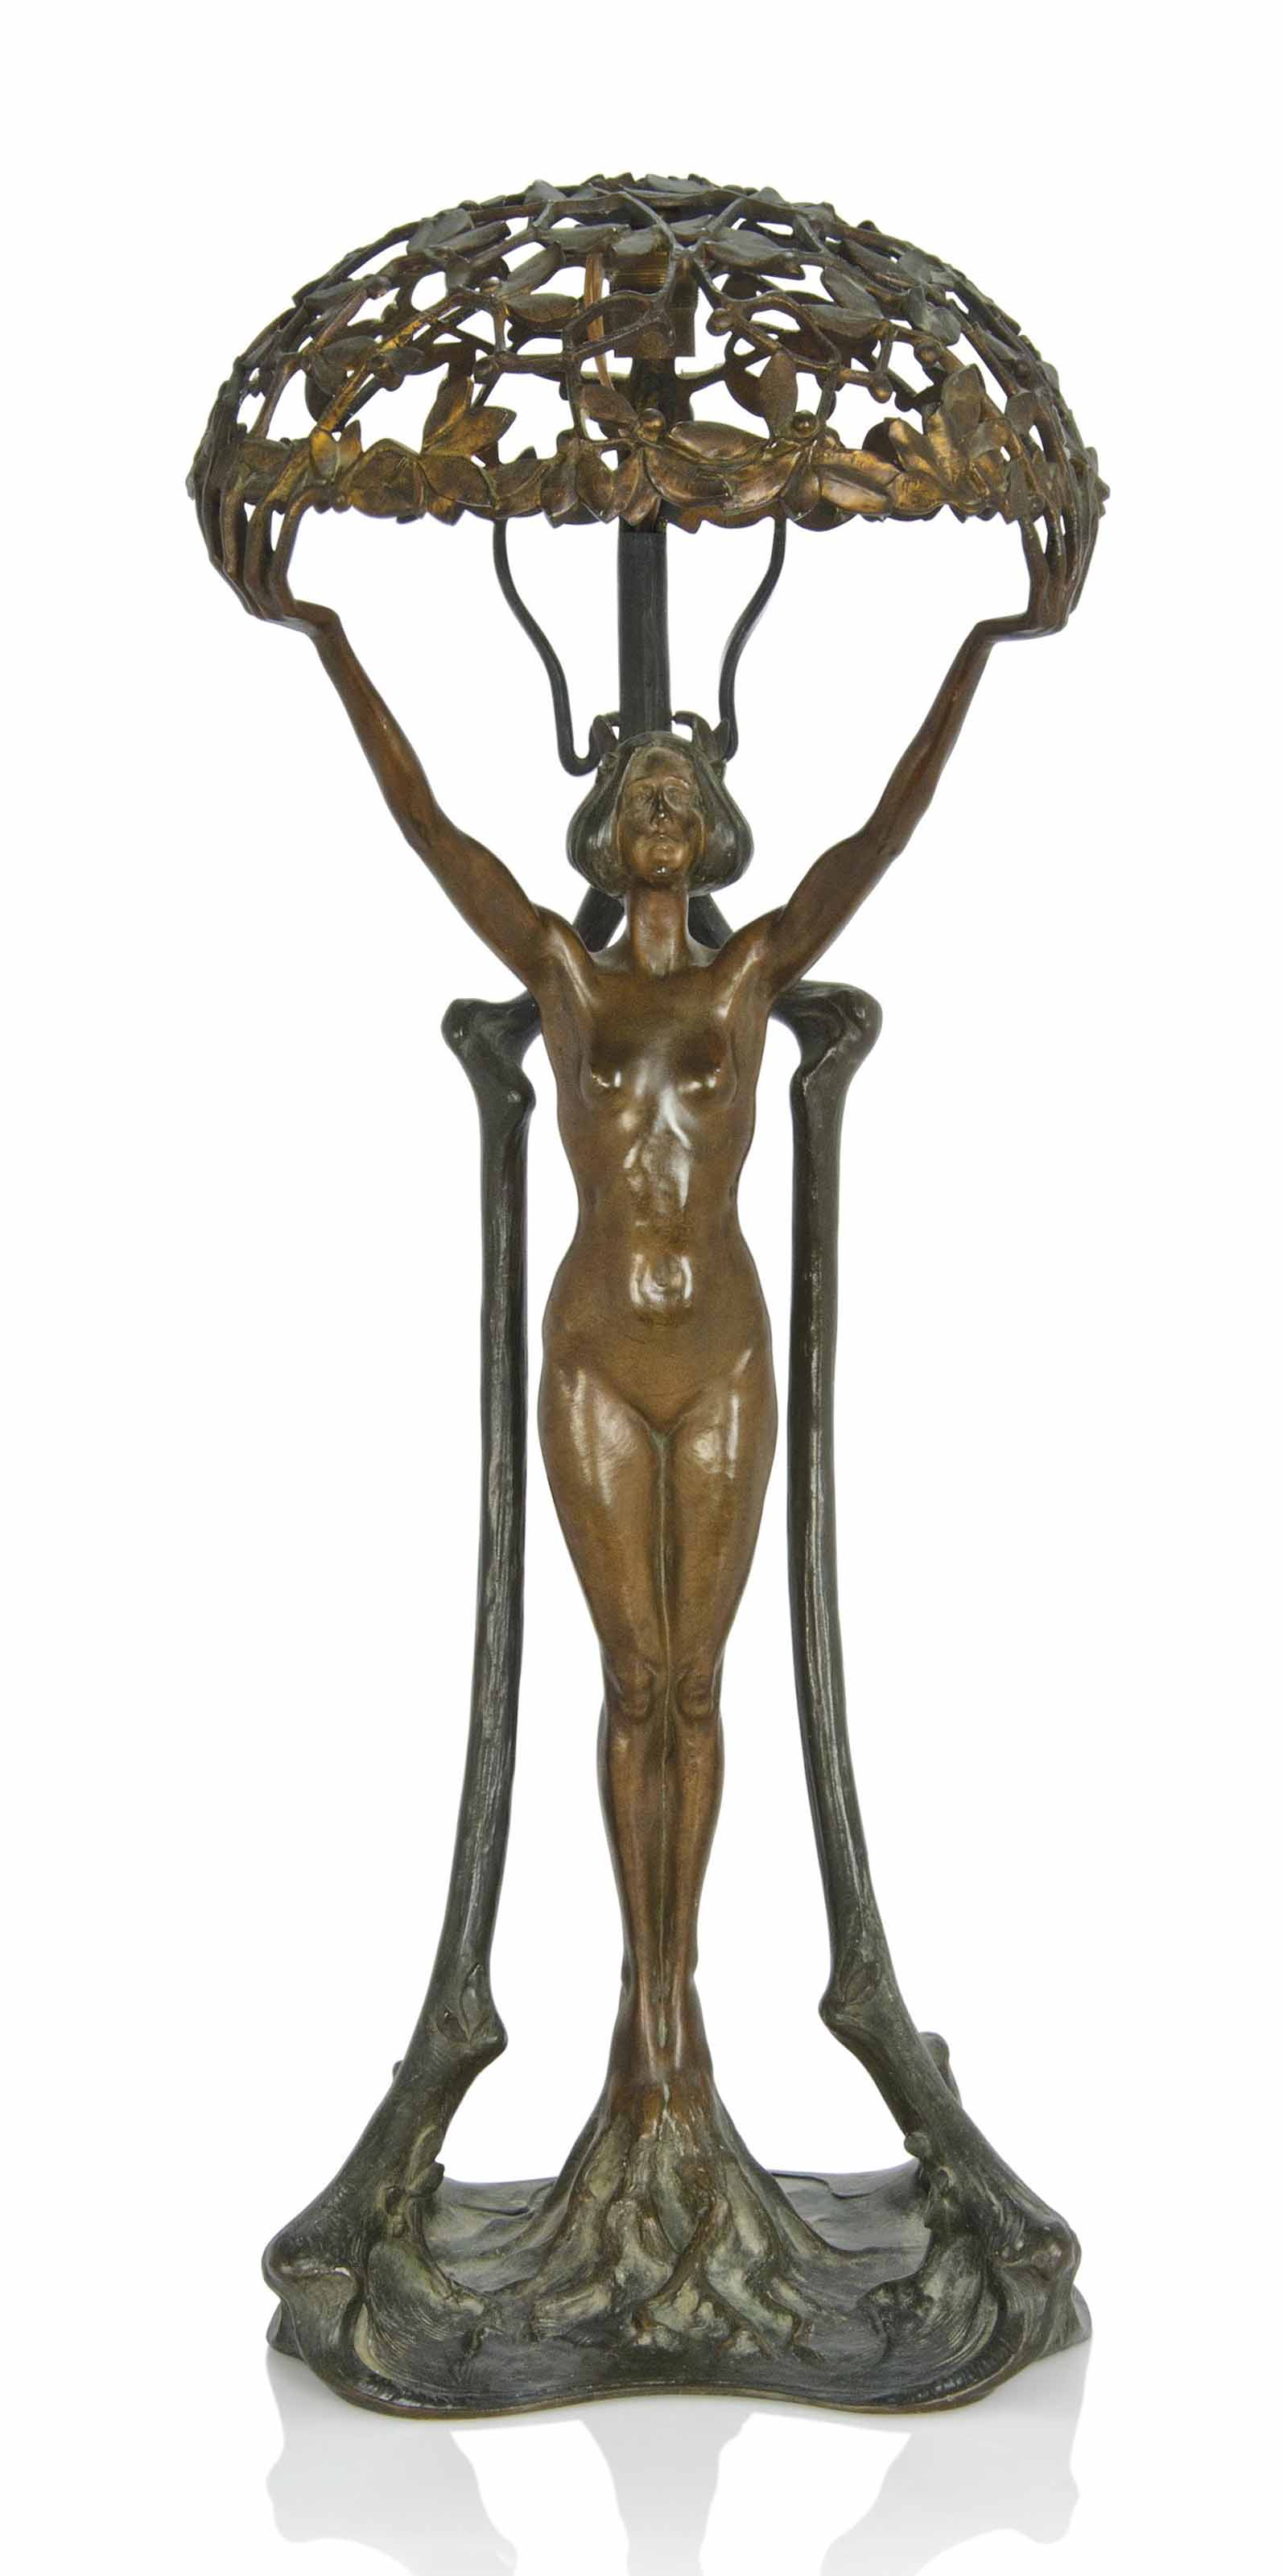 AN ADOLF POHL (1872-1930) ART NOUVEAU PATINATED BRONZE FIGURAL TABLE LAMP